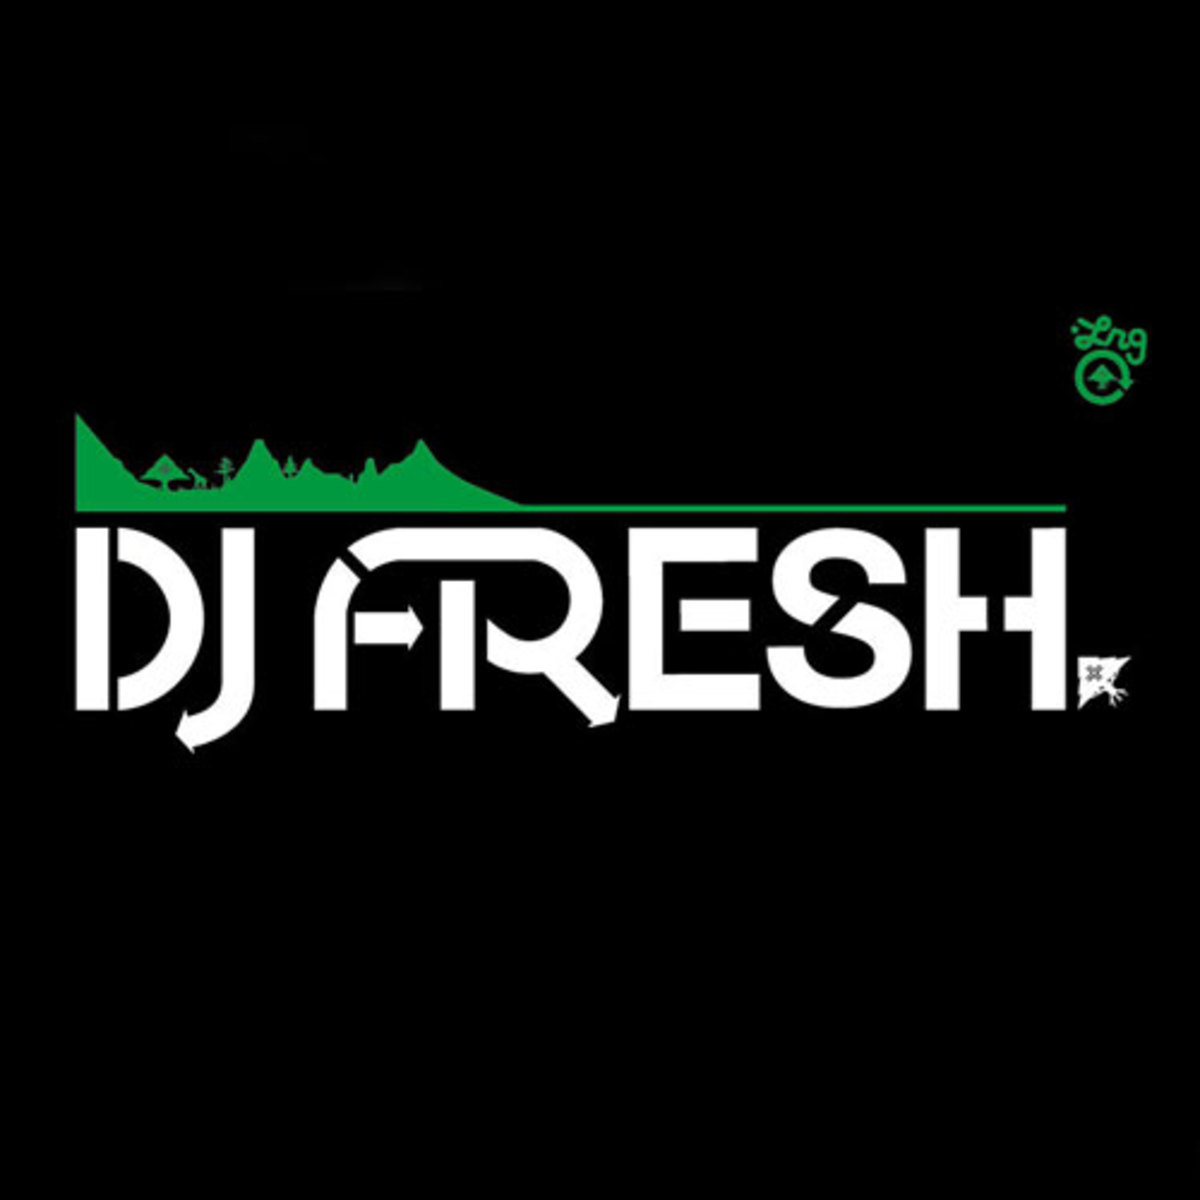 djfresh-wc.jpg